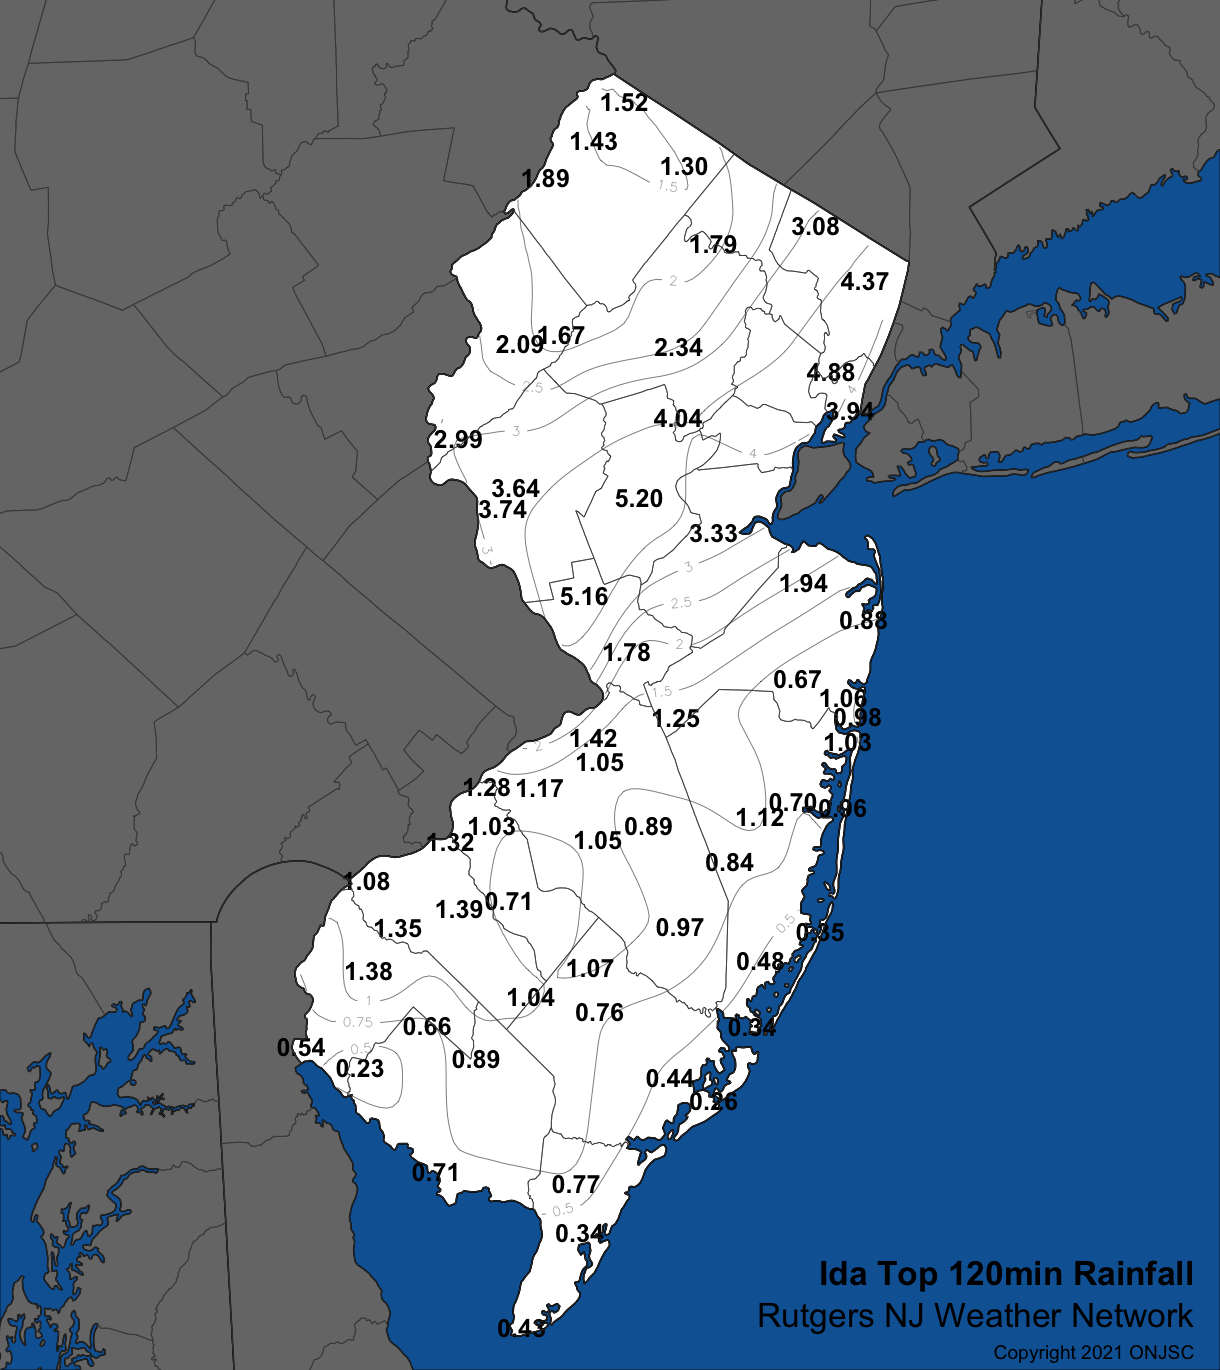 Peak two-hour rainfall across NJ based on observations from Rutgers NJWxNet stations and the Newark Airport NWS station.